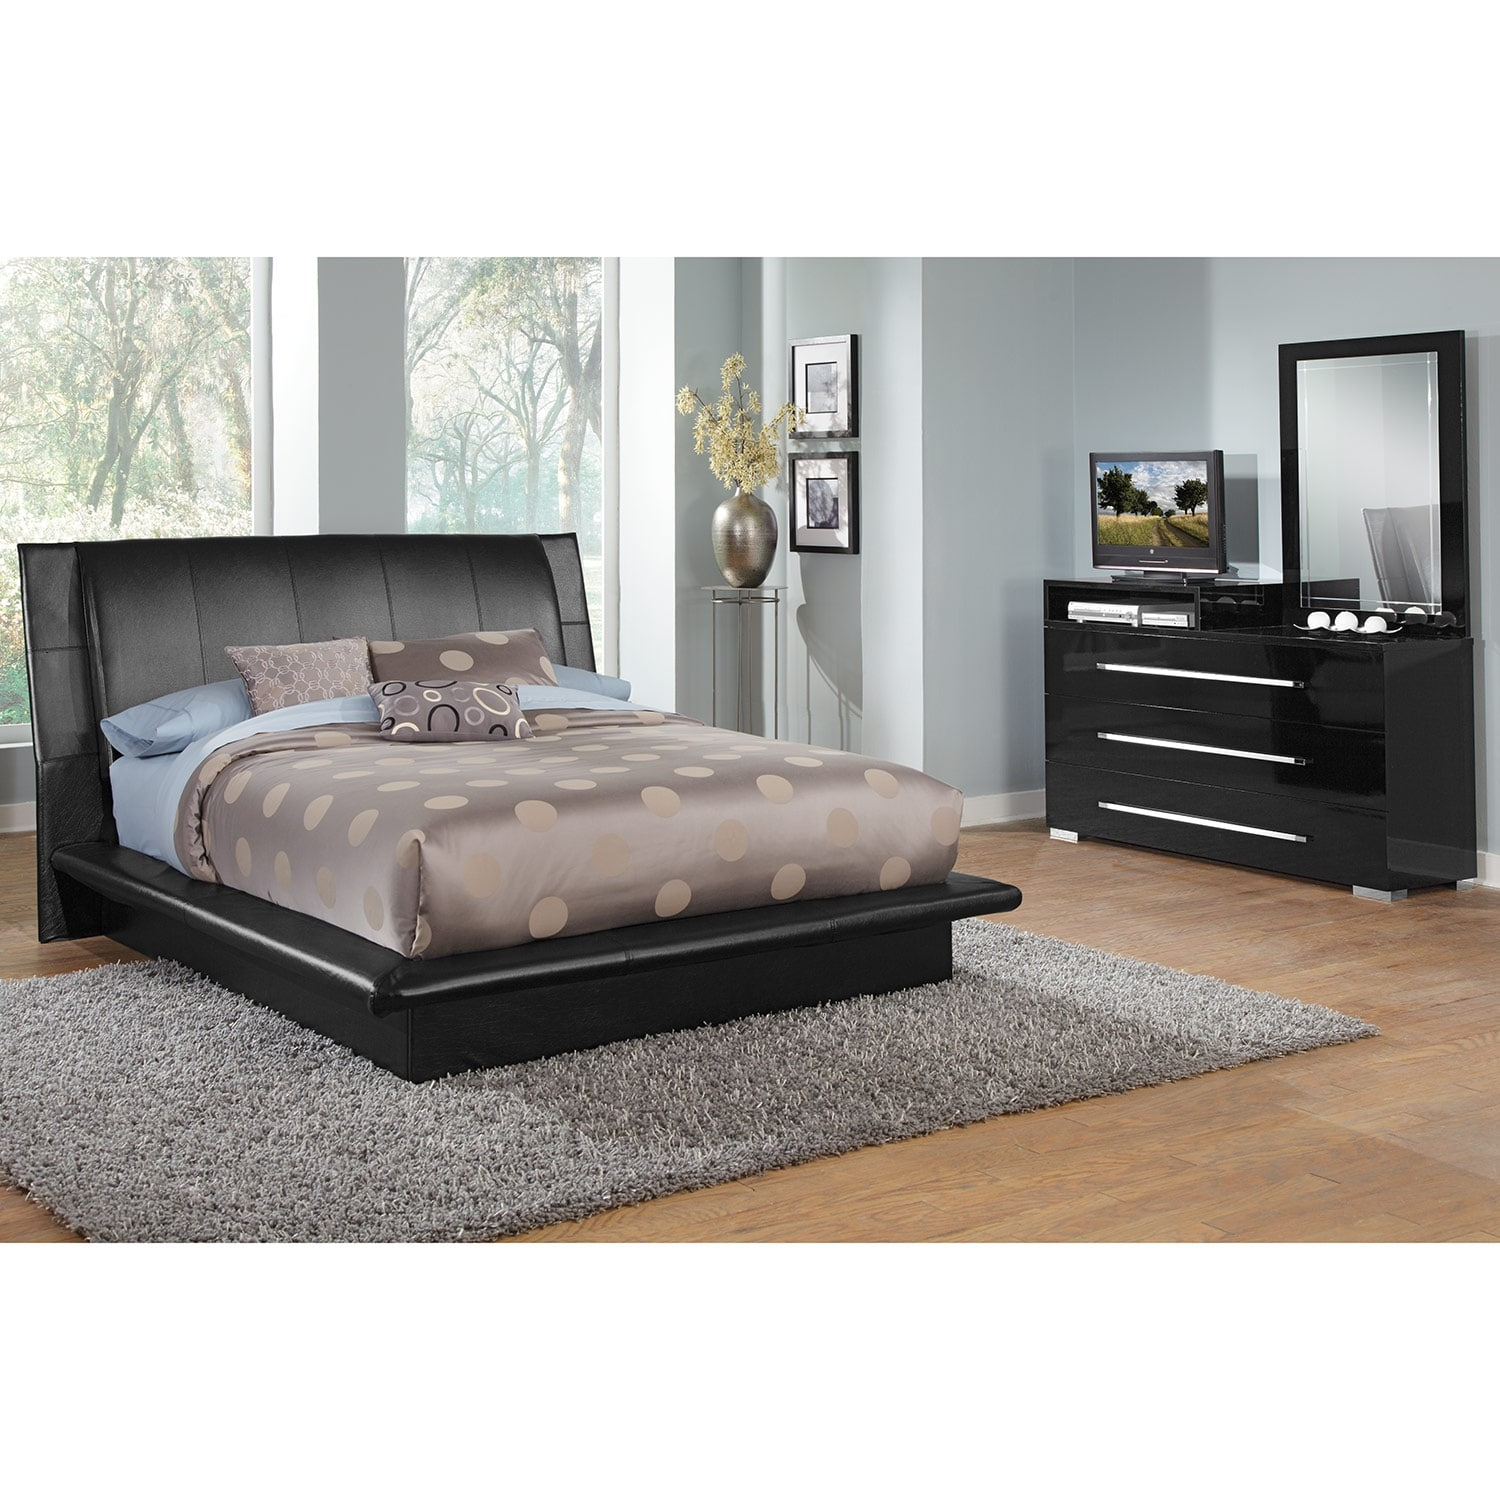 Dimora black 5 pc queen bedroom value city furniture for Bedroom set with mattress sale